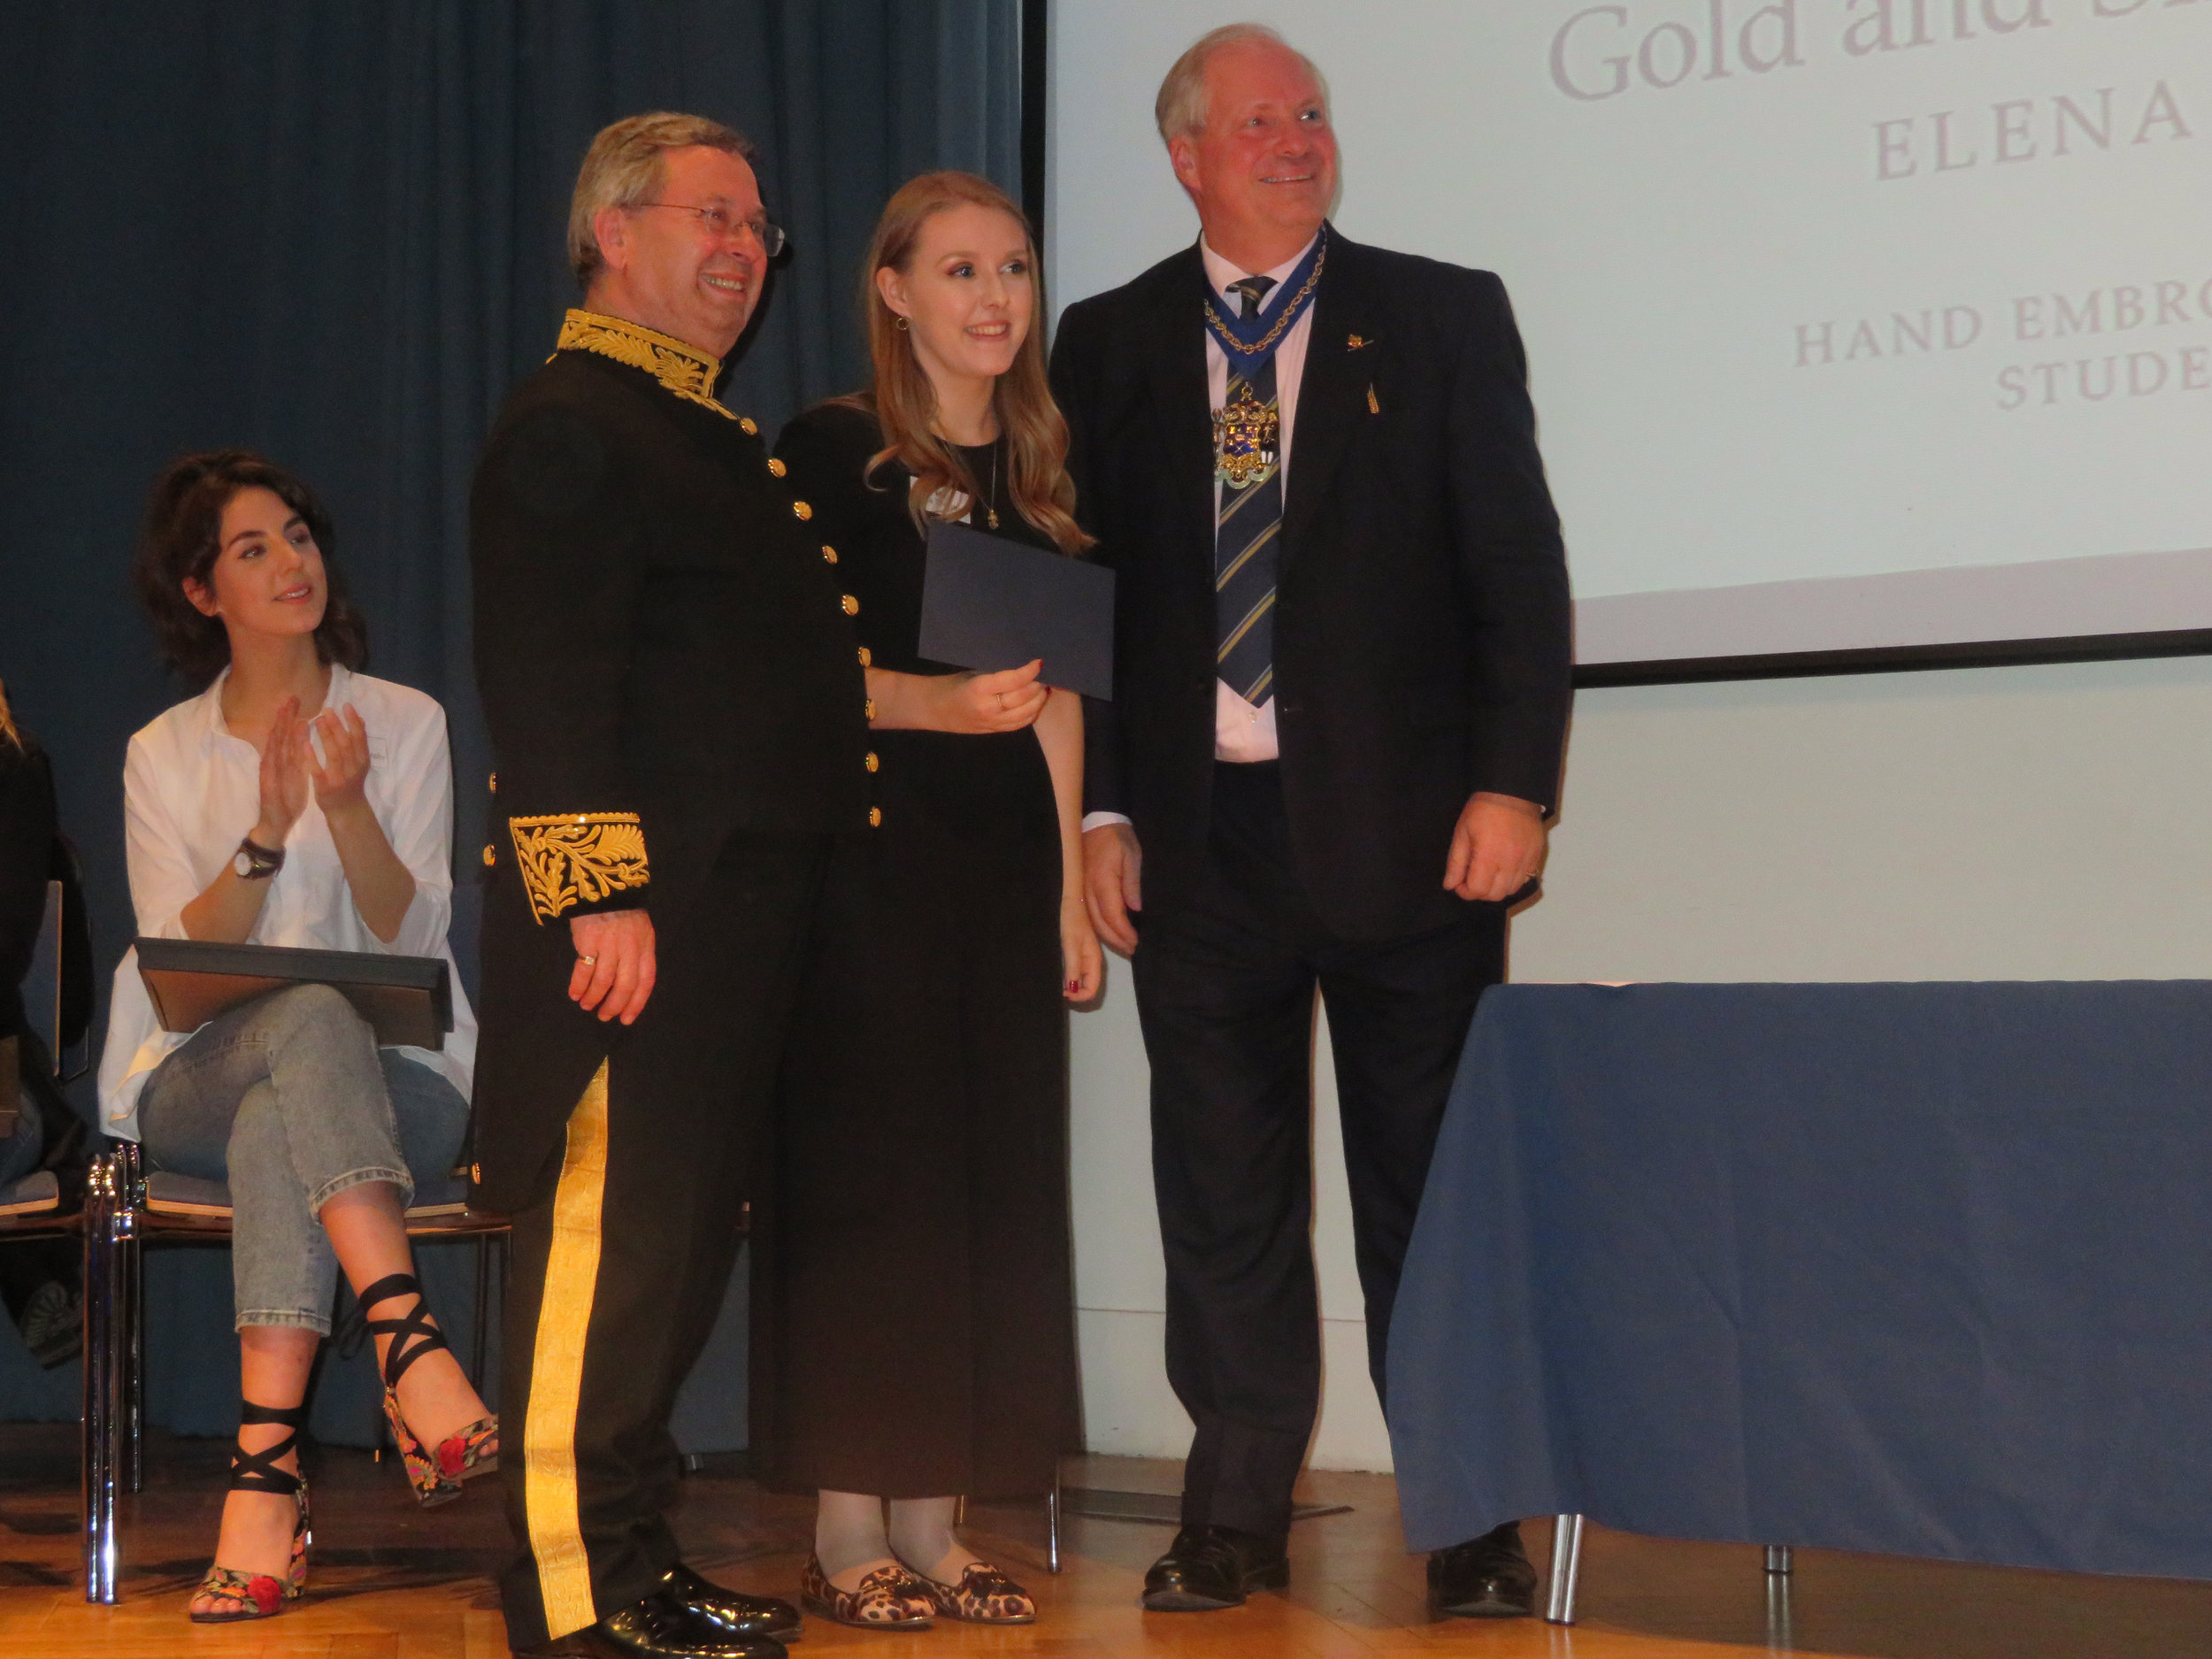 Chairman Alastair  Macleod, Elena Receiving the GSWD Goldwork Award from the Master Paul Constantinidi